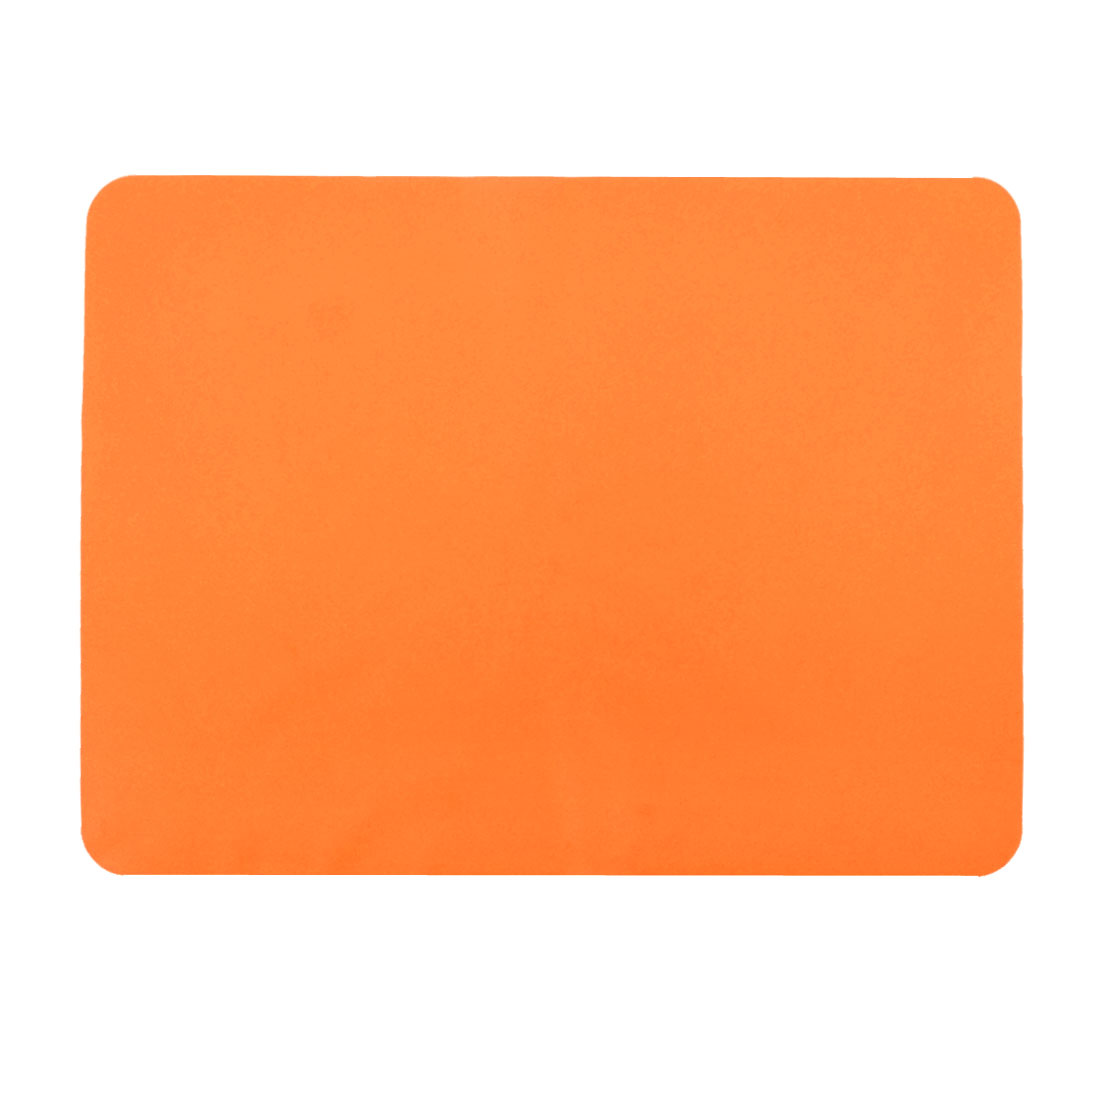 Home Restaurant Silicone Table Heat Resistant Baking Mat Cushion Placemat Orange